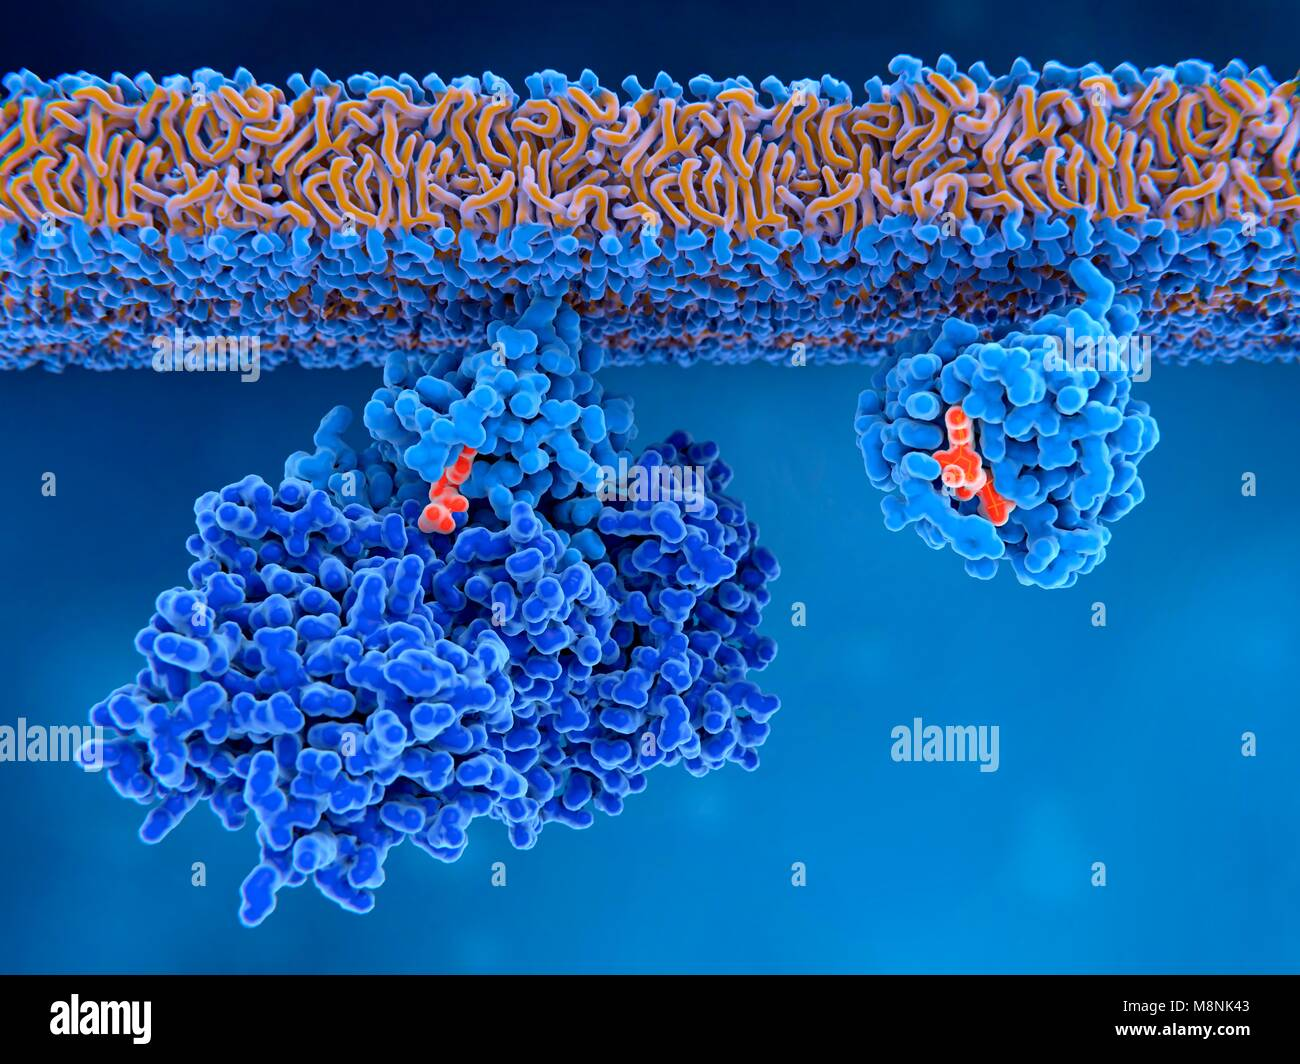 Activation of Ras protein,illustration. An inactive Ras protein (left) has a GEF (guanine nucleotide exchange factor) Stock Photo